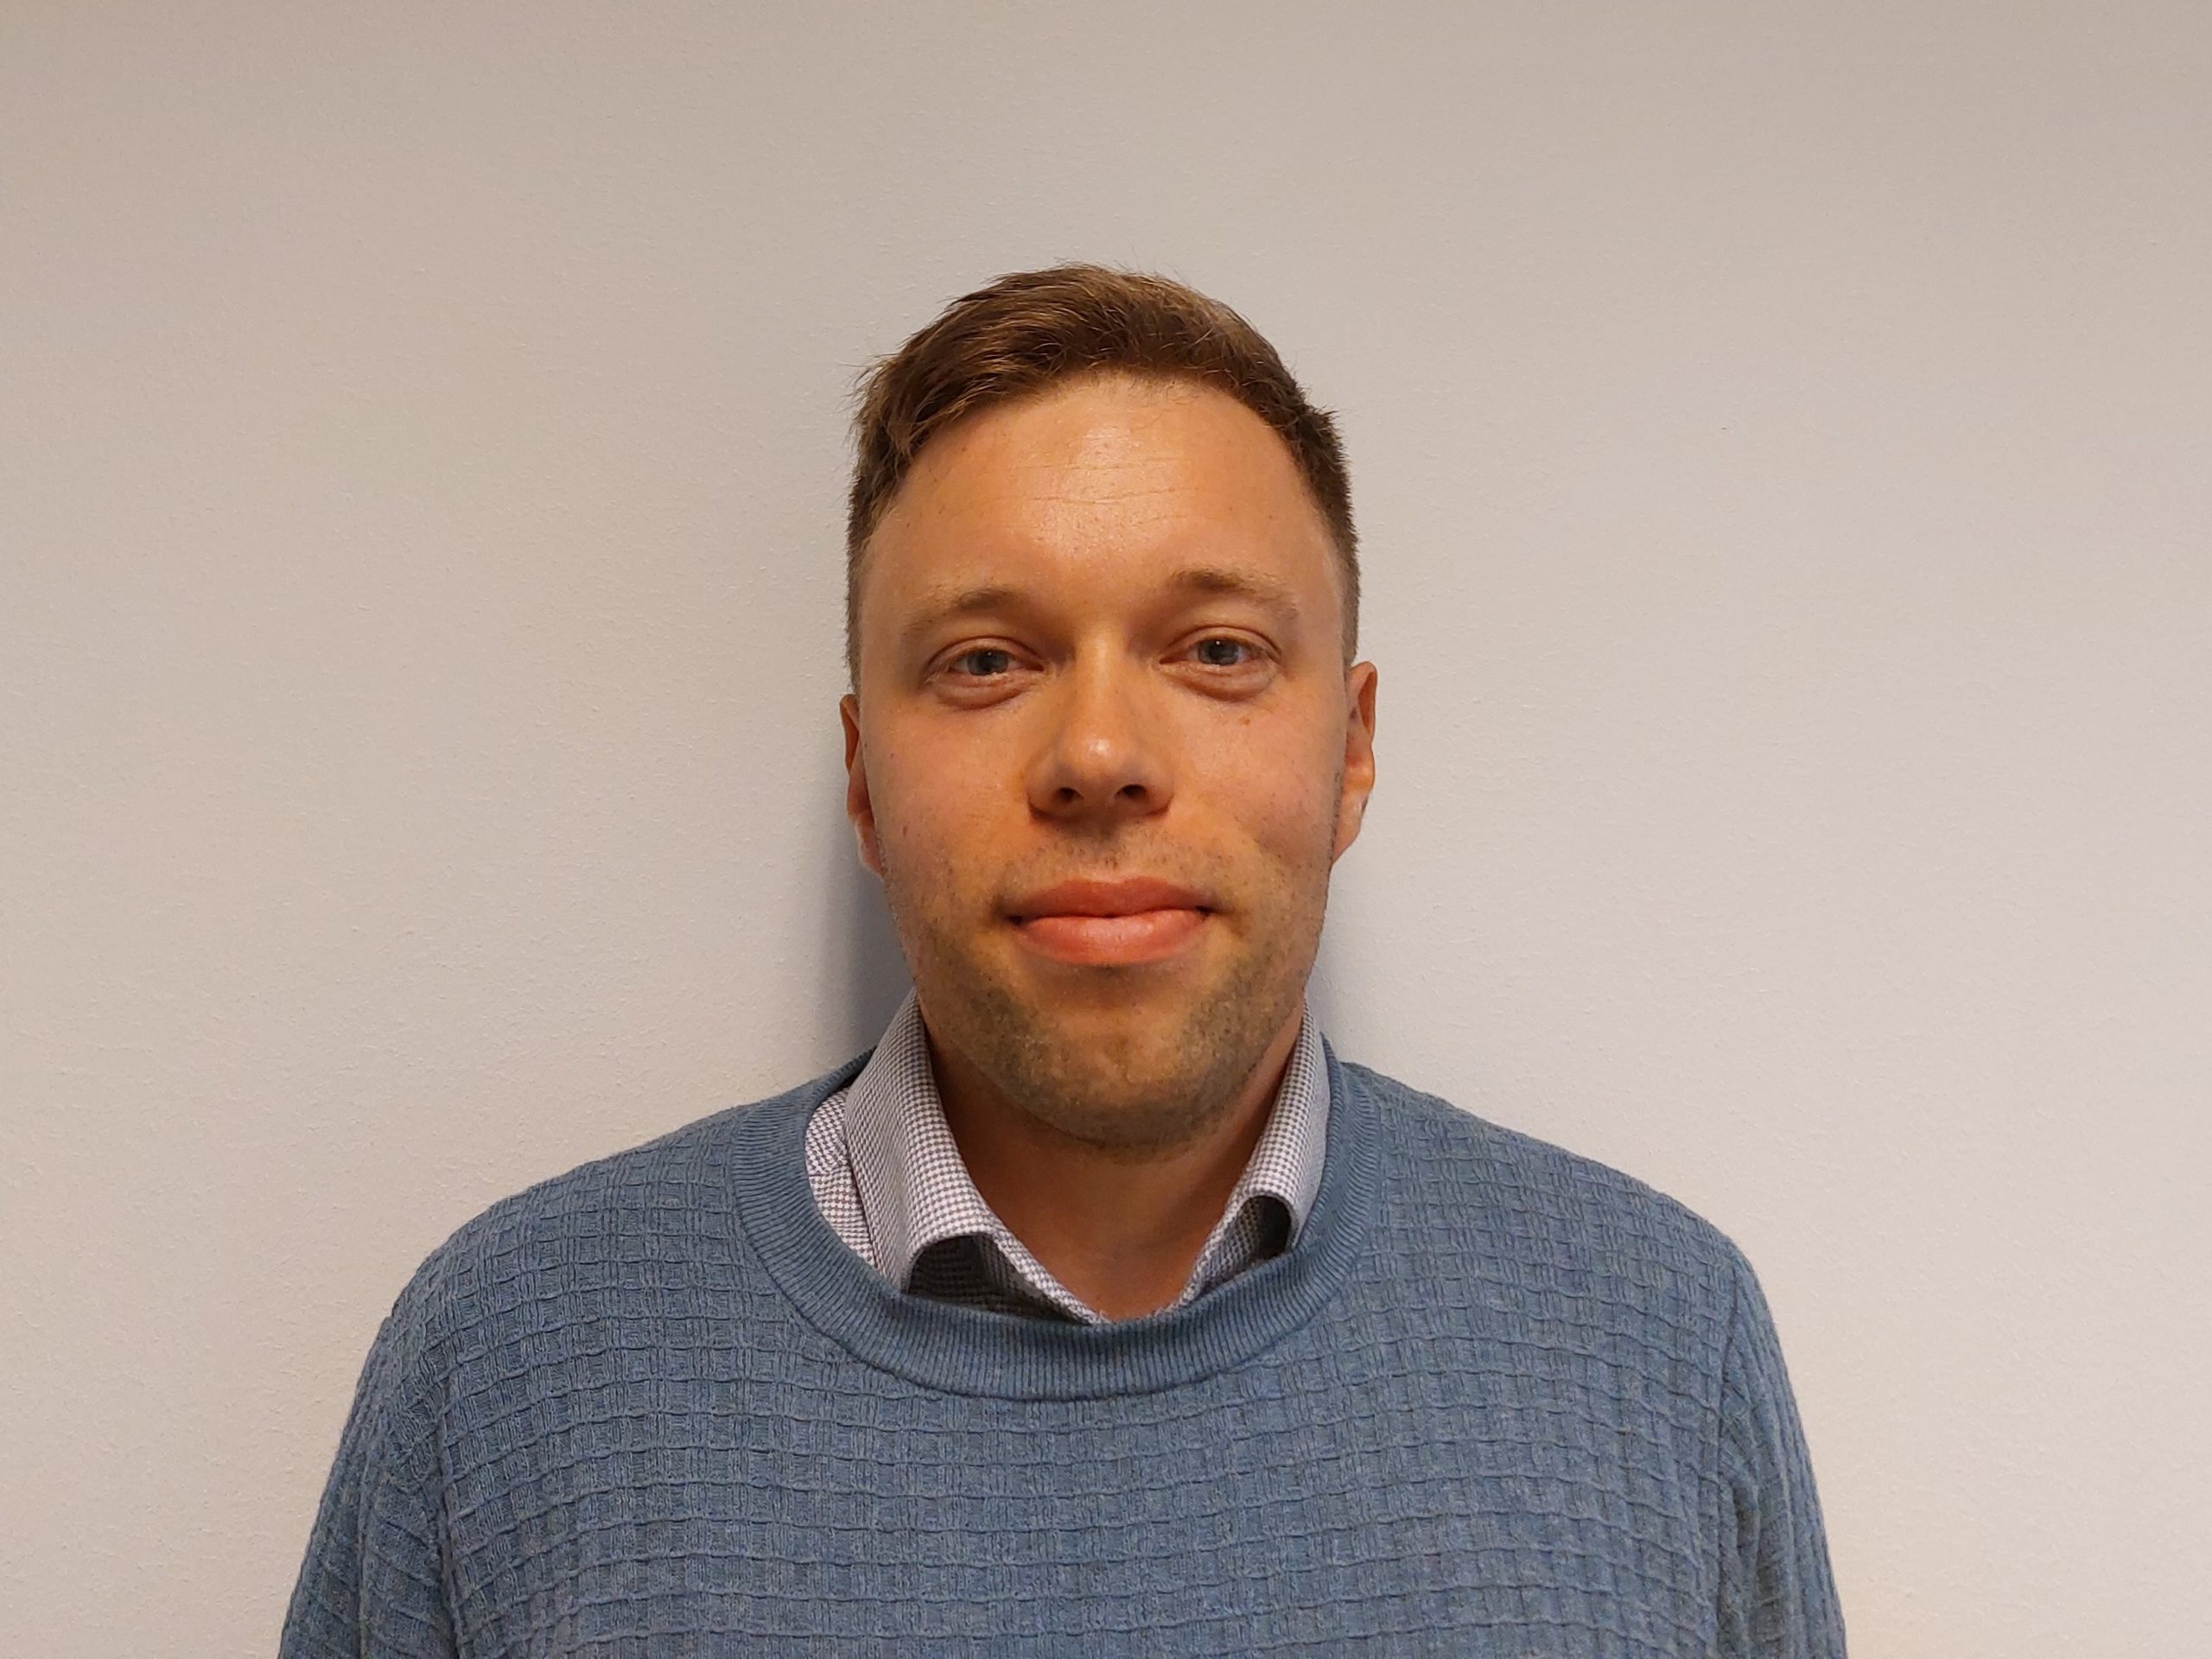 Antti Hirvonen joins RoadCloud as Sales Manager